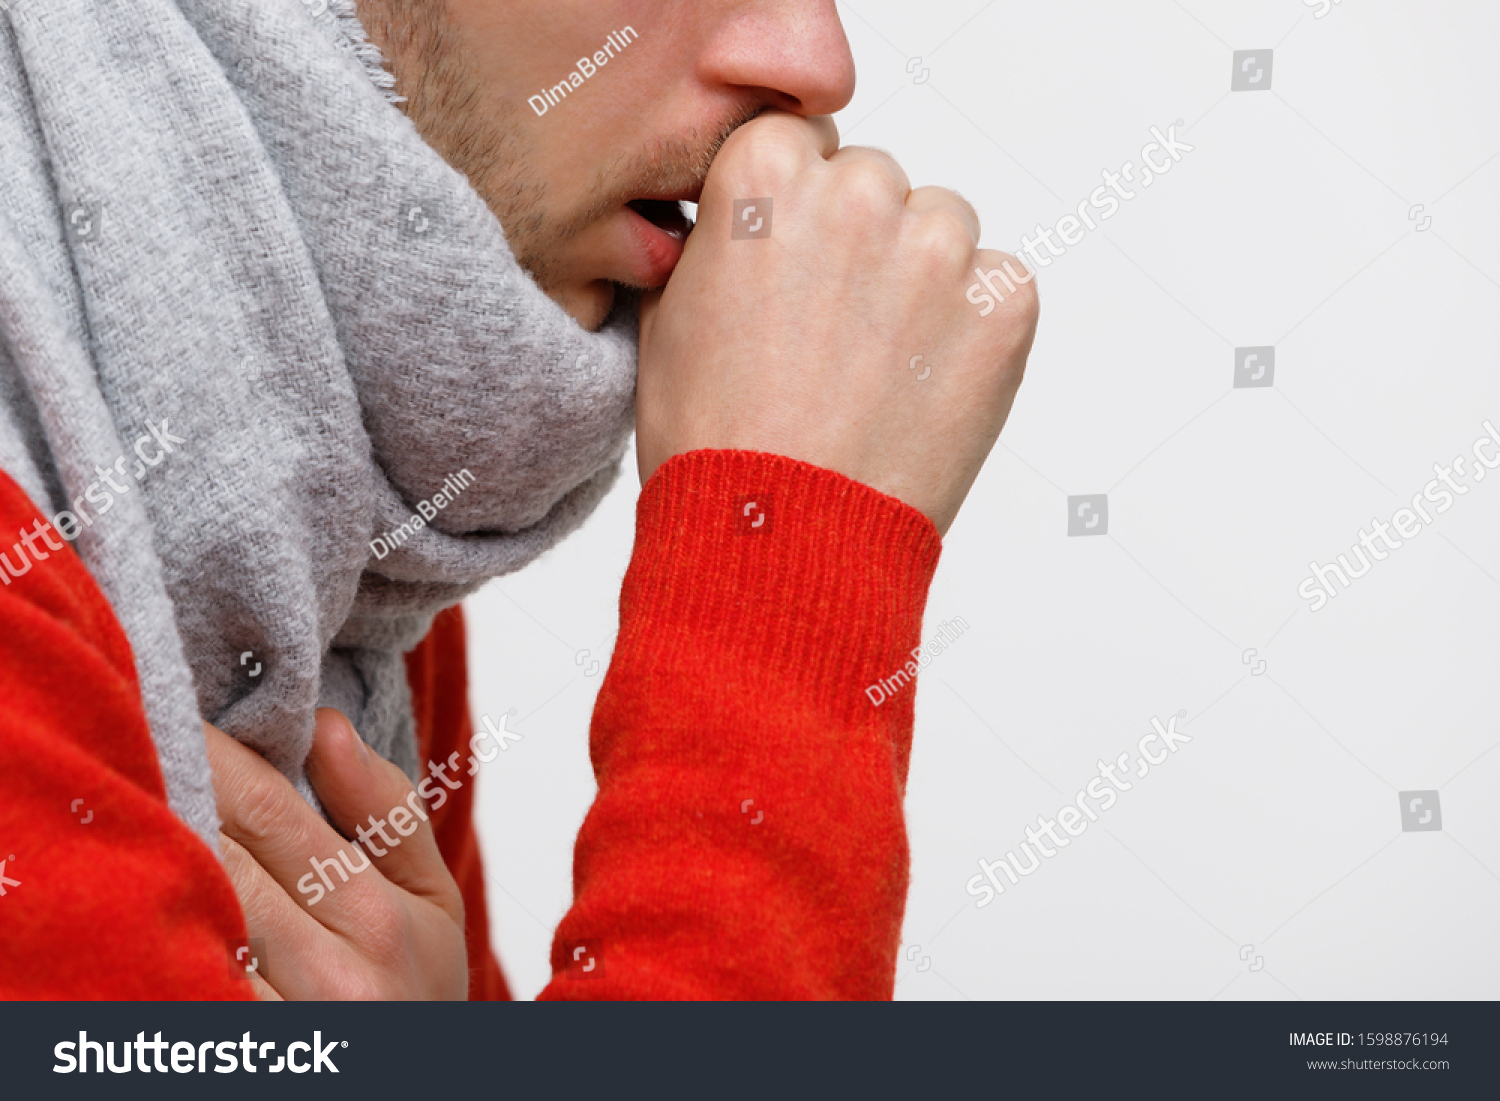 Close up of unhealthy man in orange sweater suffering with pulmonary cough due to cold, flu, respiratory infections, pneumonia, bronchitis, wrapped in scarf, isolated on white background.  #1598876194